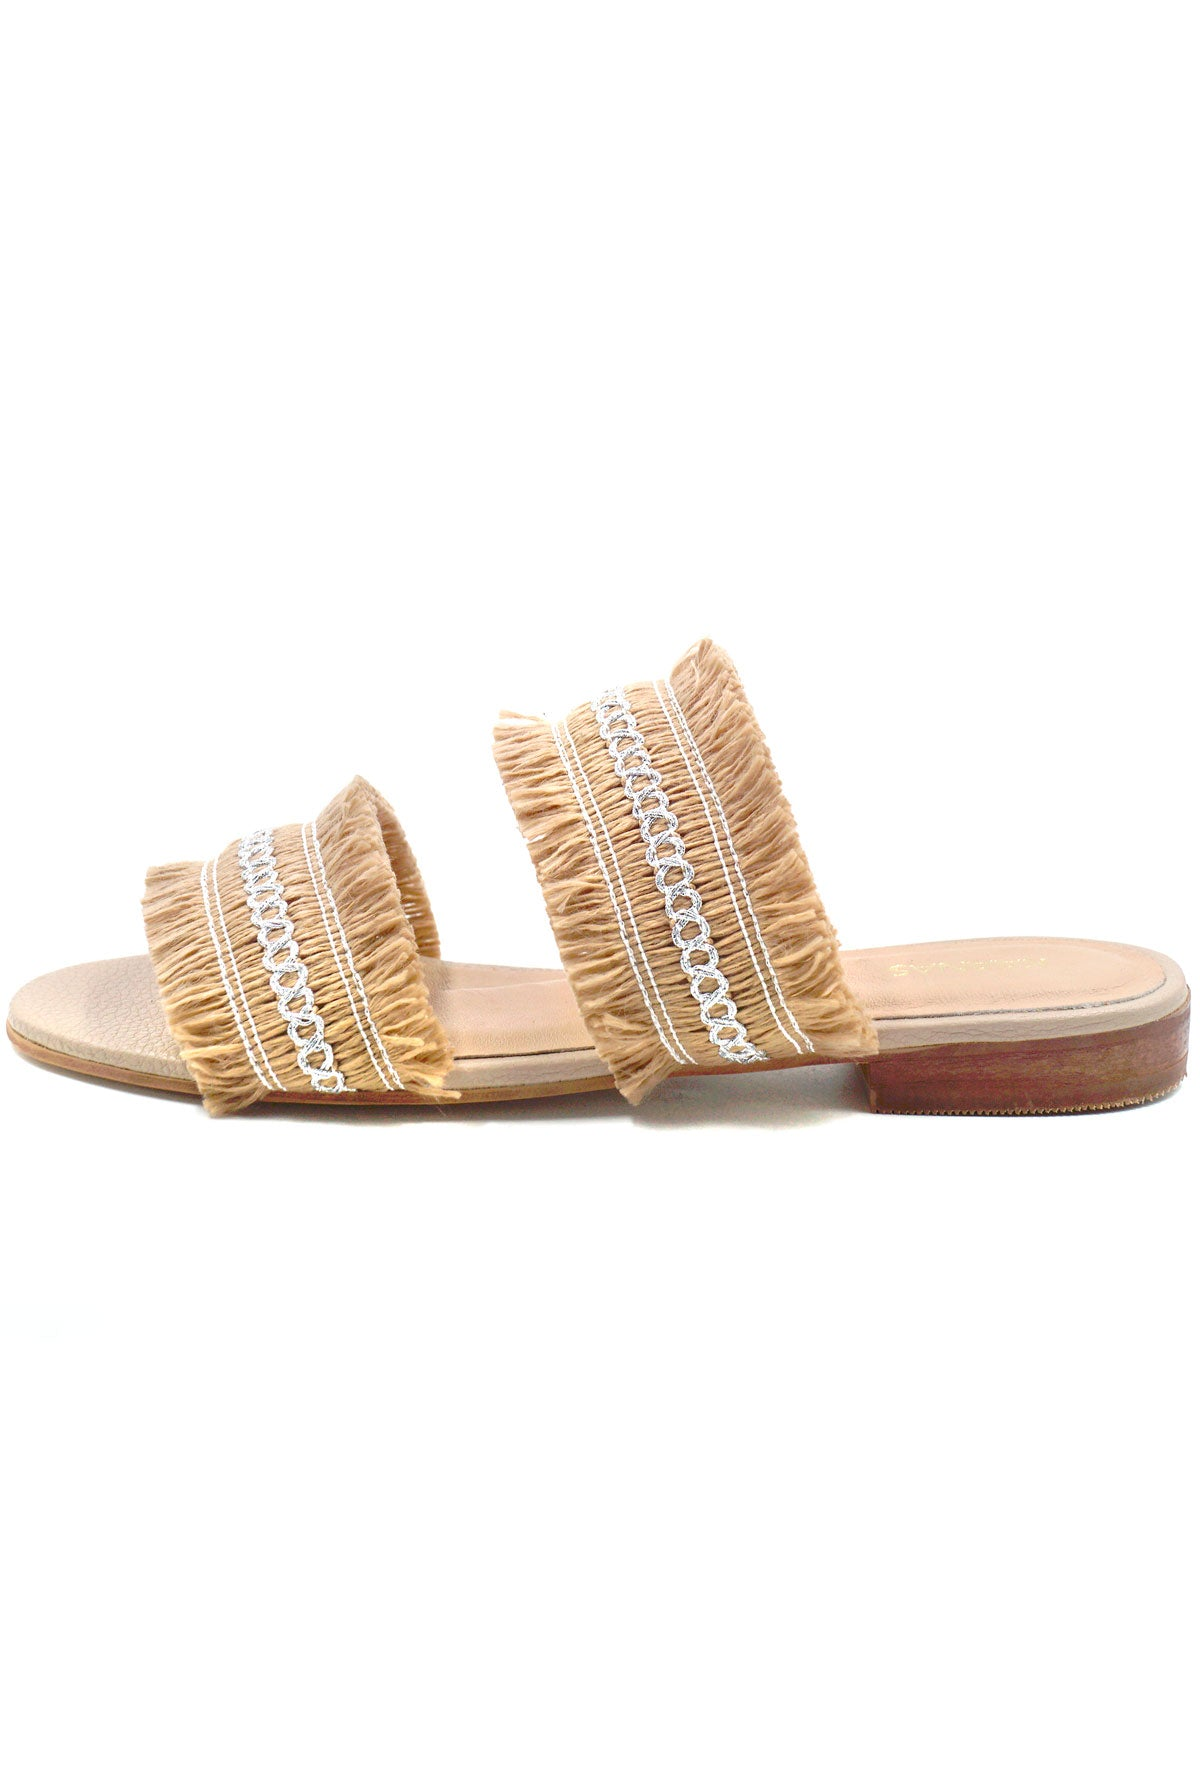 Kaanas Yassica Frayed Sandal in Champagne - US10 Nude